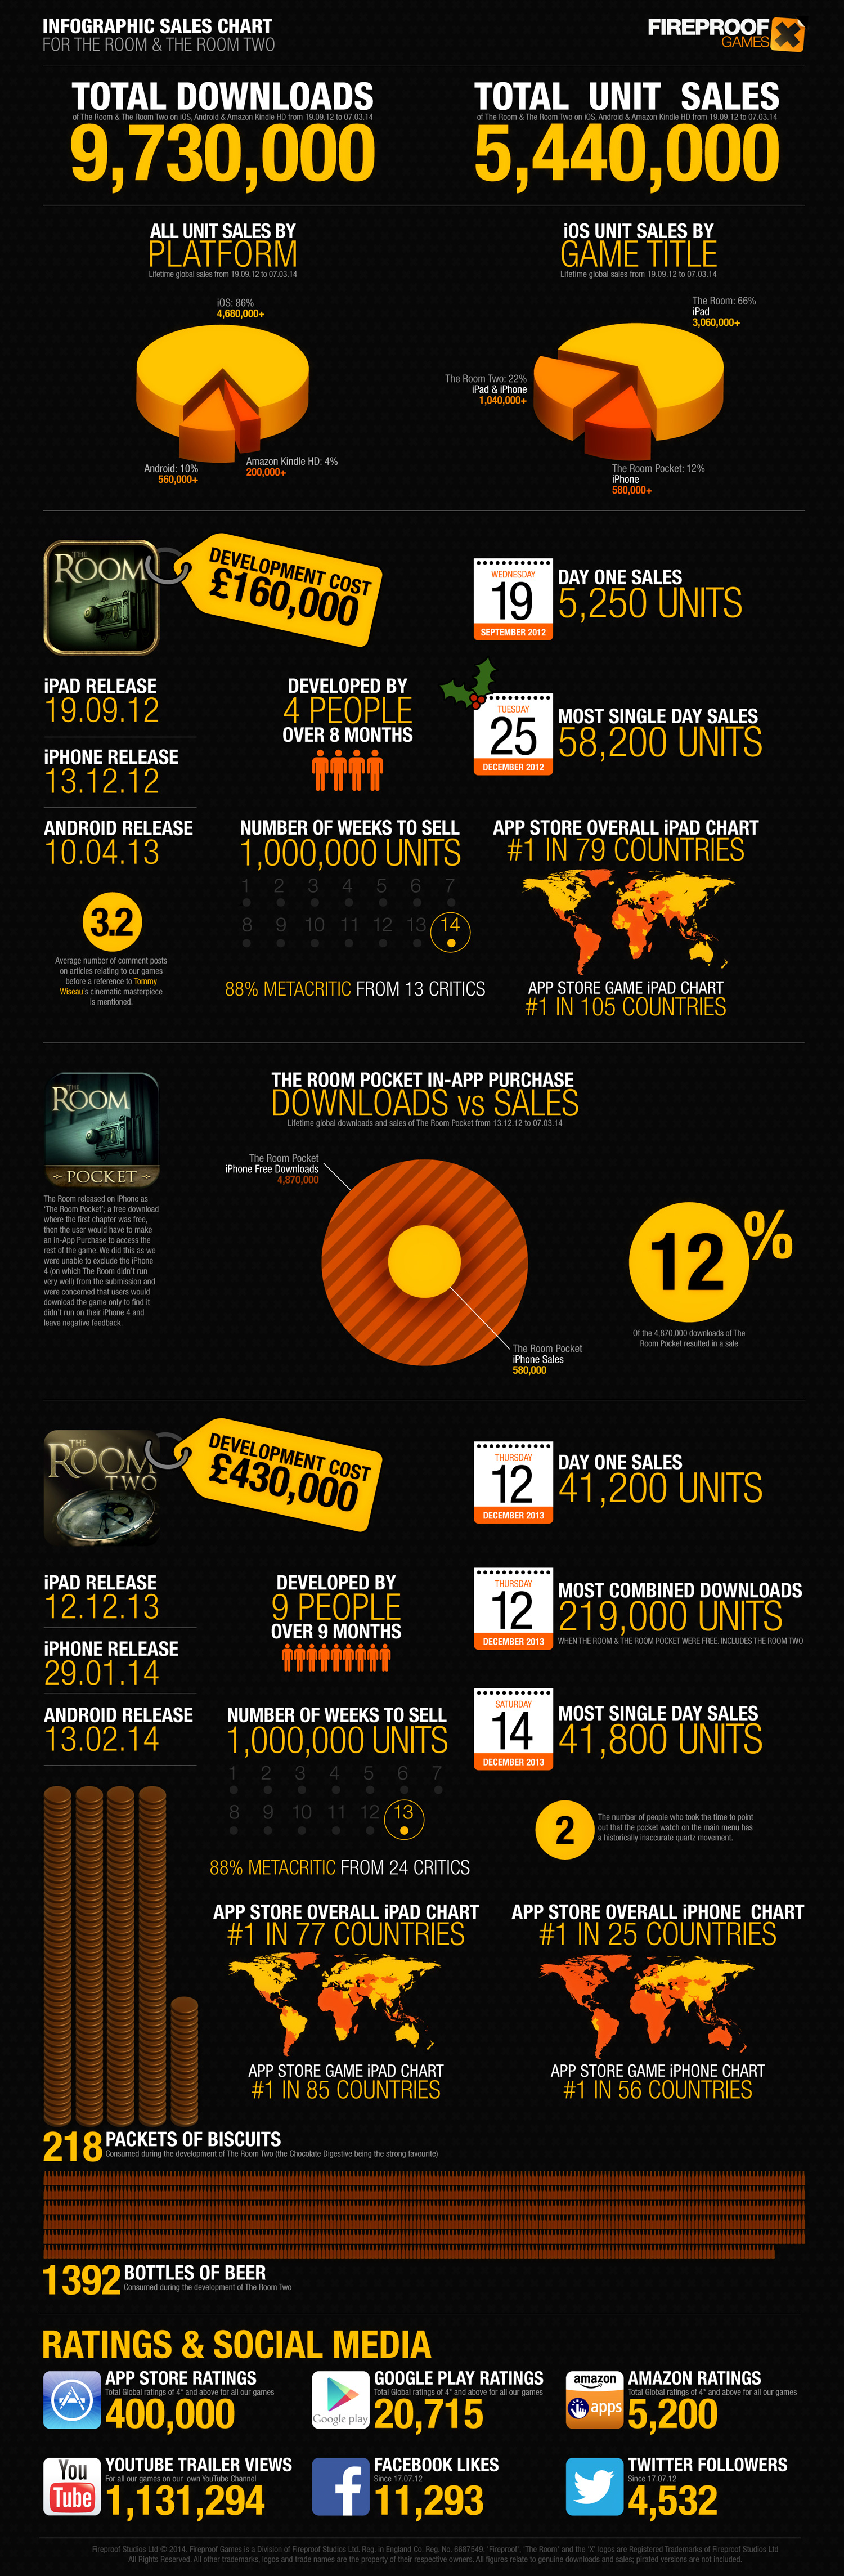 The Room 1 + 2 Sales Infographic